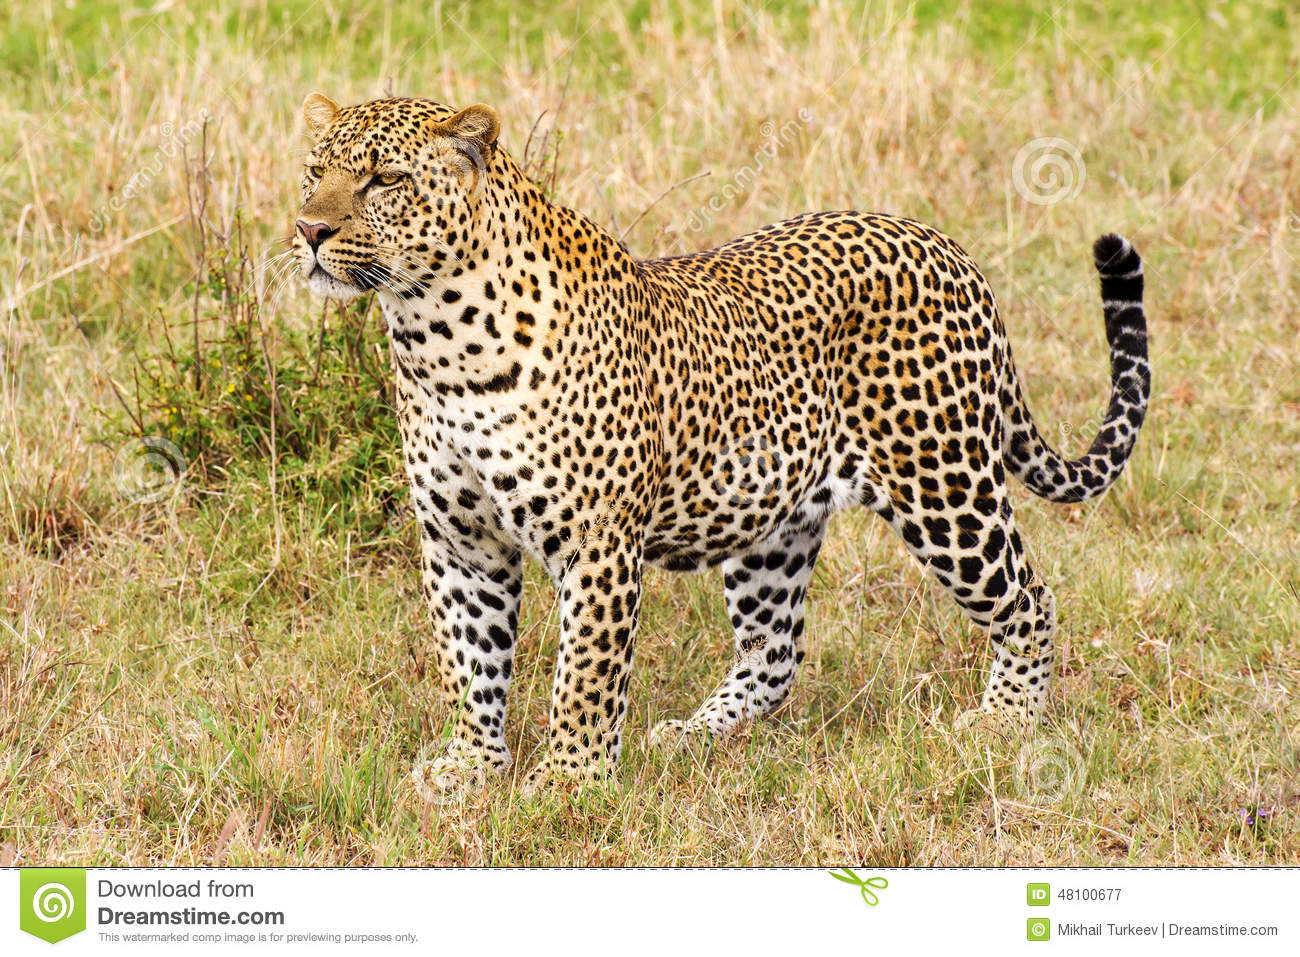 leopard close up side view stock photo image 48100677 leopard clip art image leopard clip art image